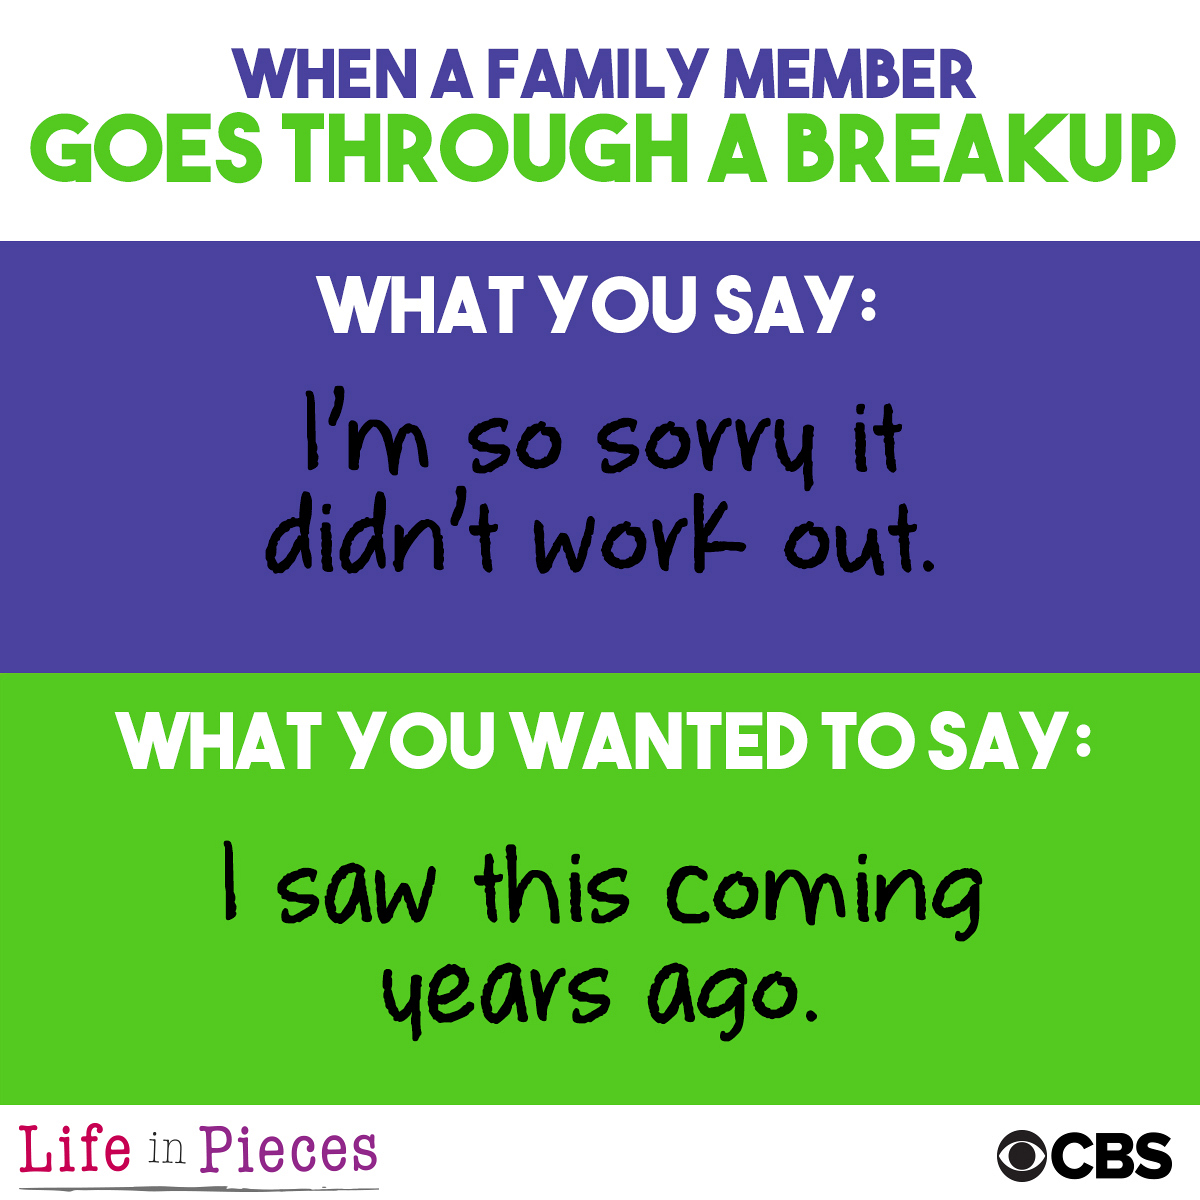 When a family member goes through a breakup